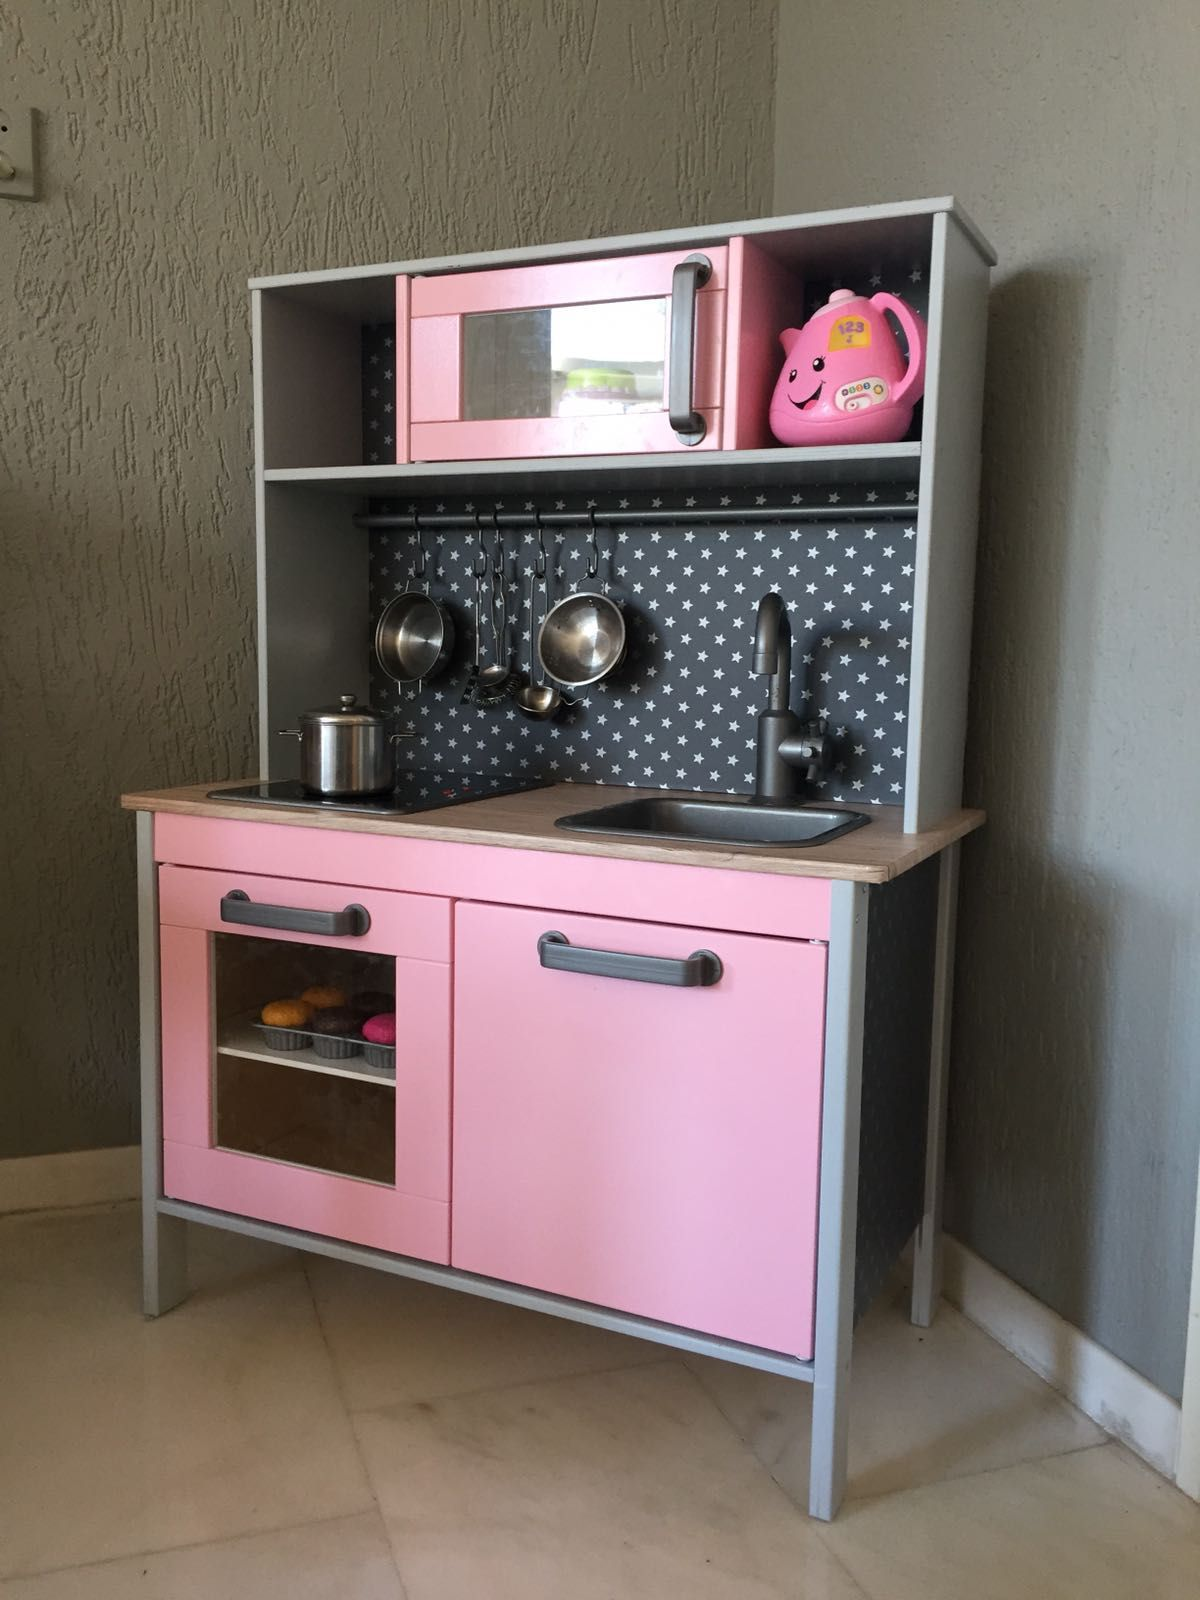 Ikea Duktig Keukentje Pimpenikea Kids Kitchen Duktig Makeover Childrens Kitchen